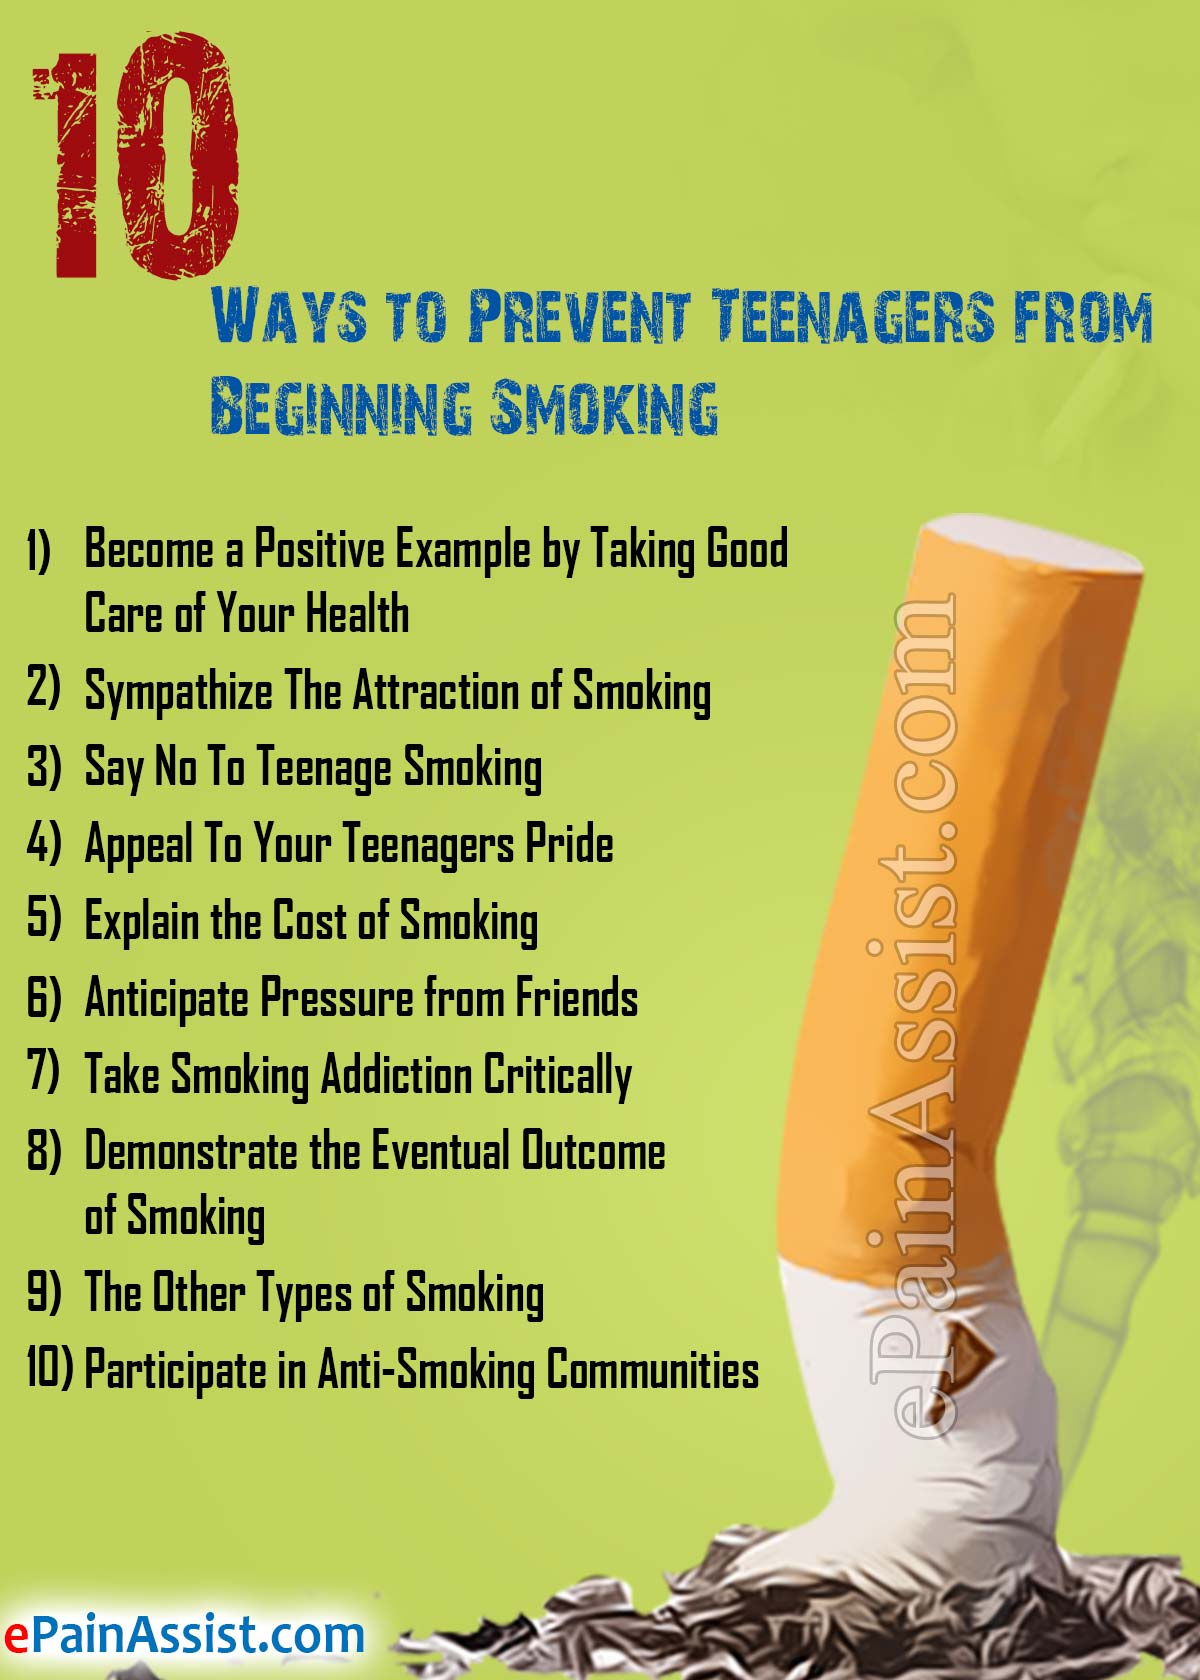 Teenage Pregnancy Prevention: Statistics and